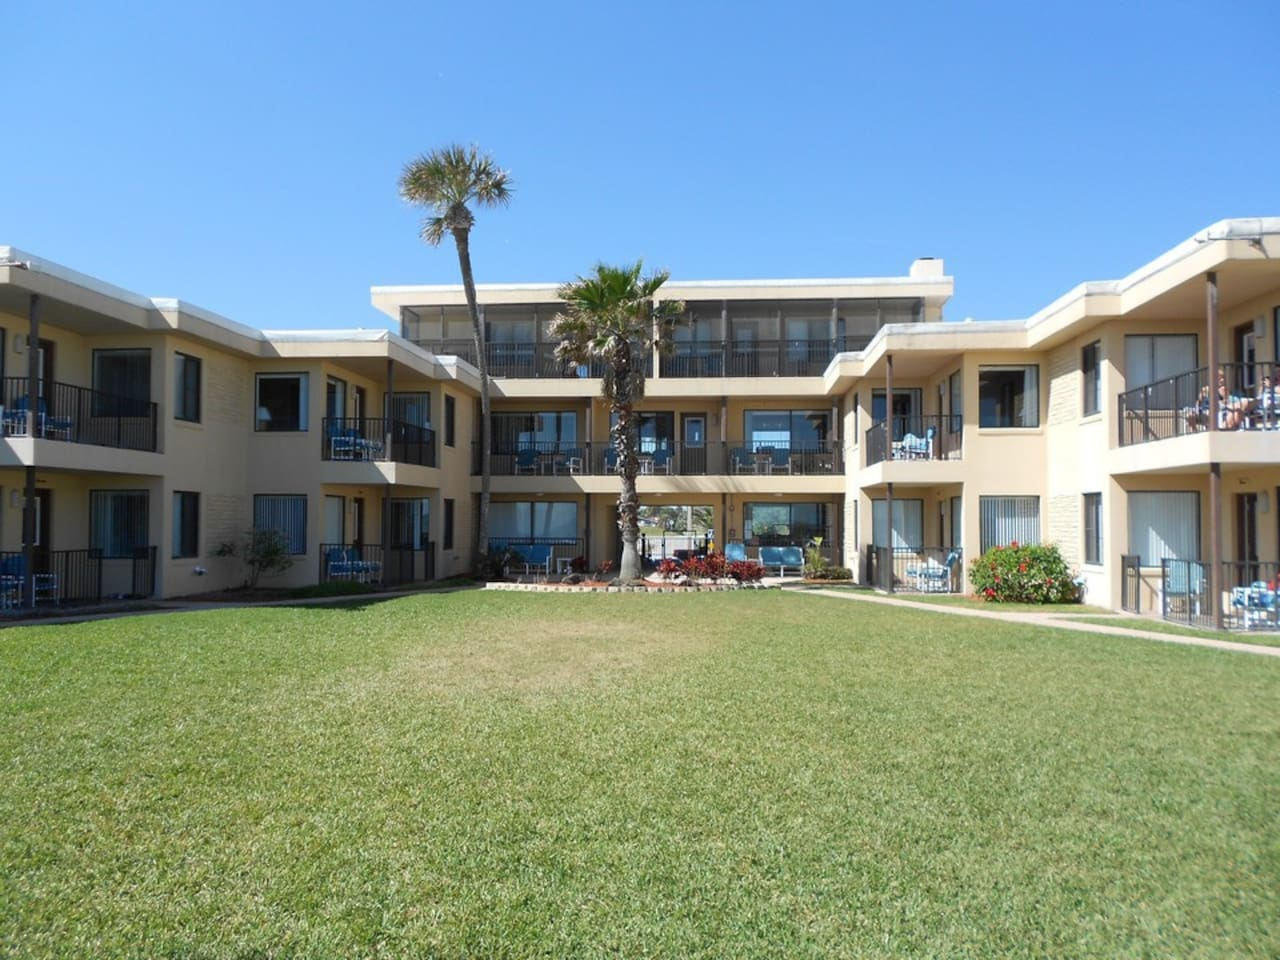 Penthouse unit, screened outdoor space with view directly onto beach.